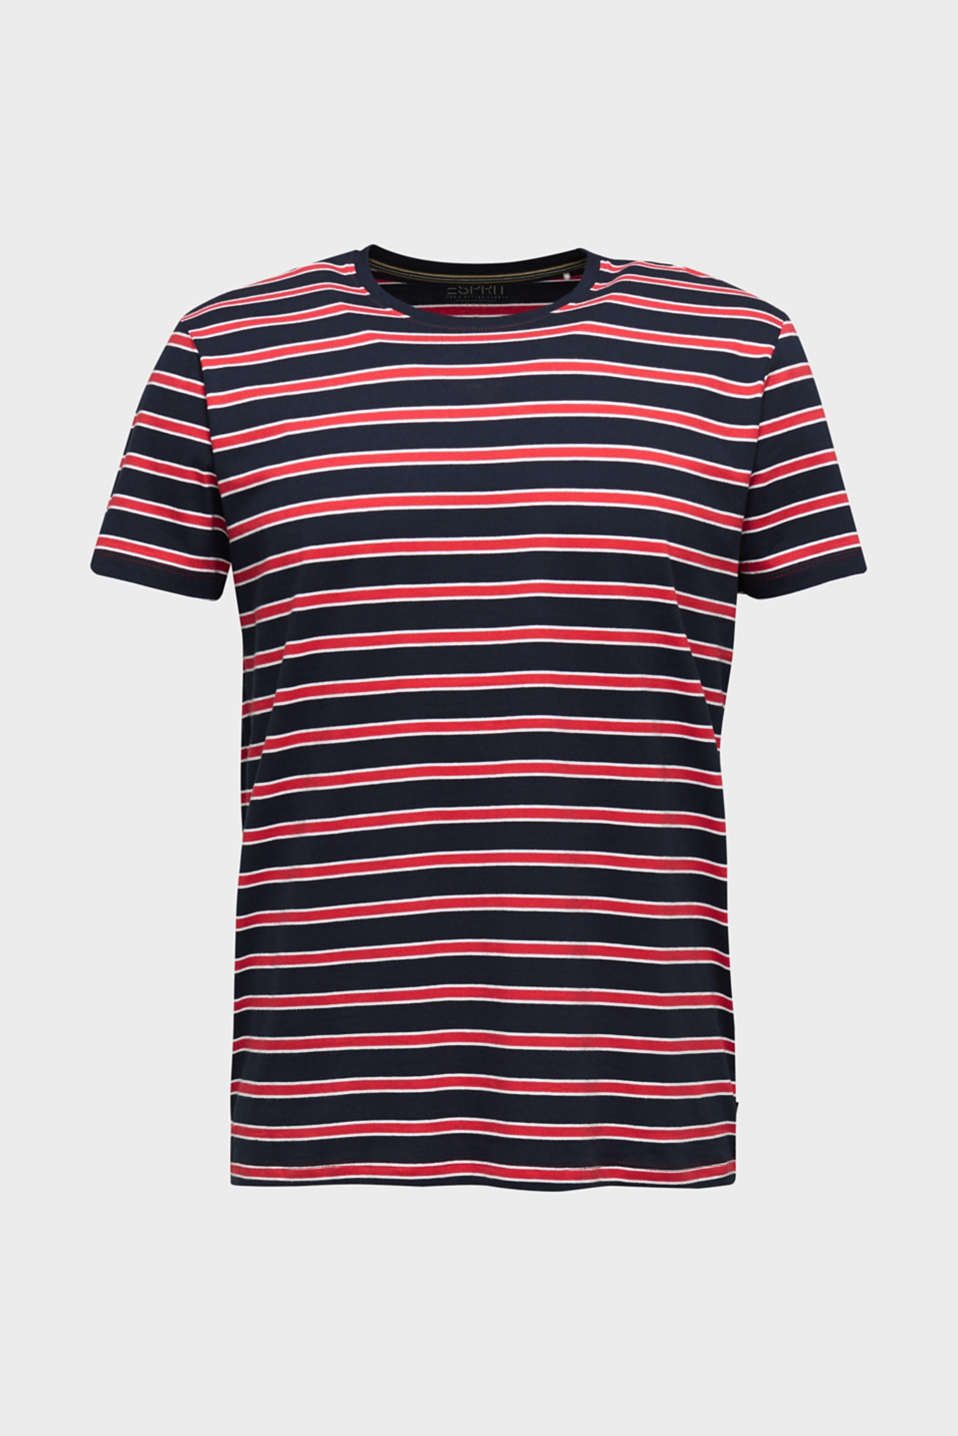 Jersey T-shirt with stripes, 100% cotton, RED 3, detail image number 8